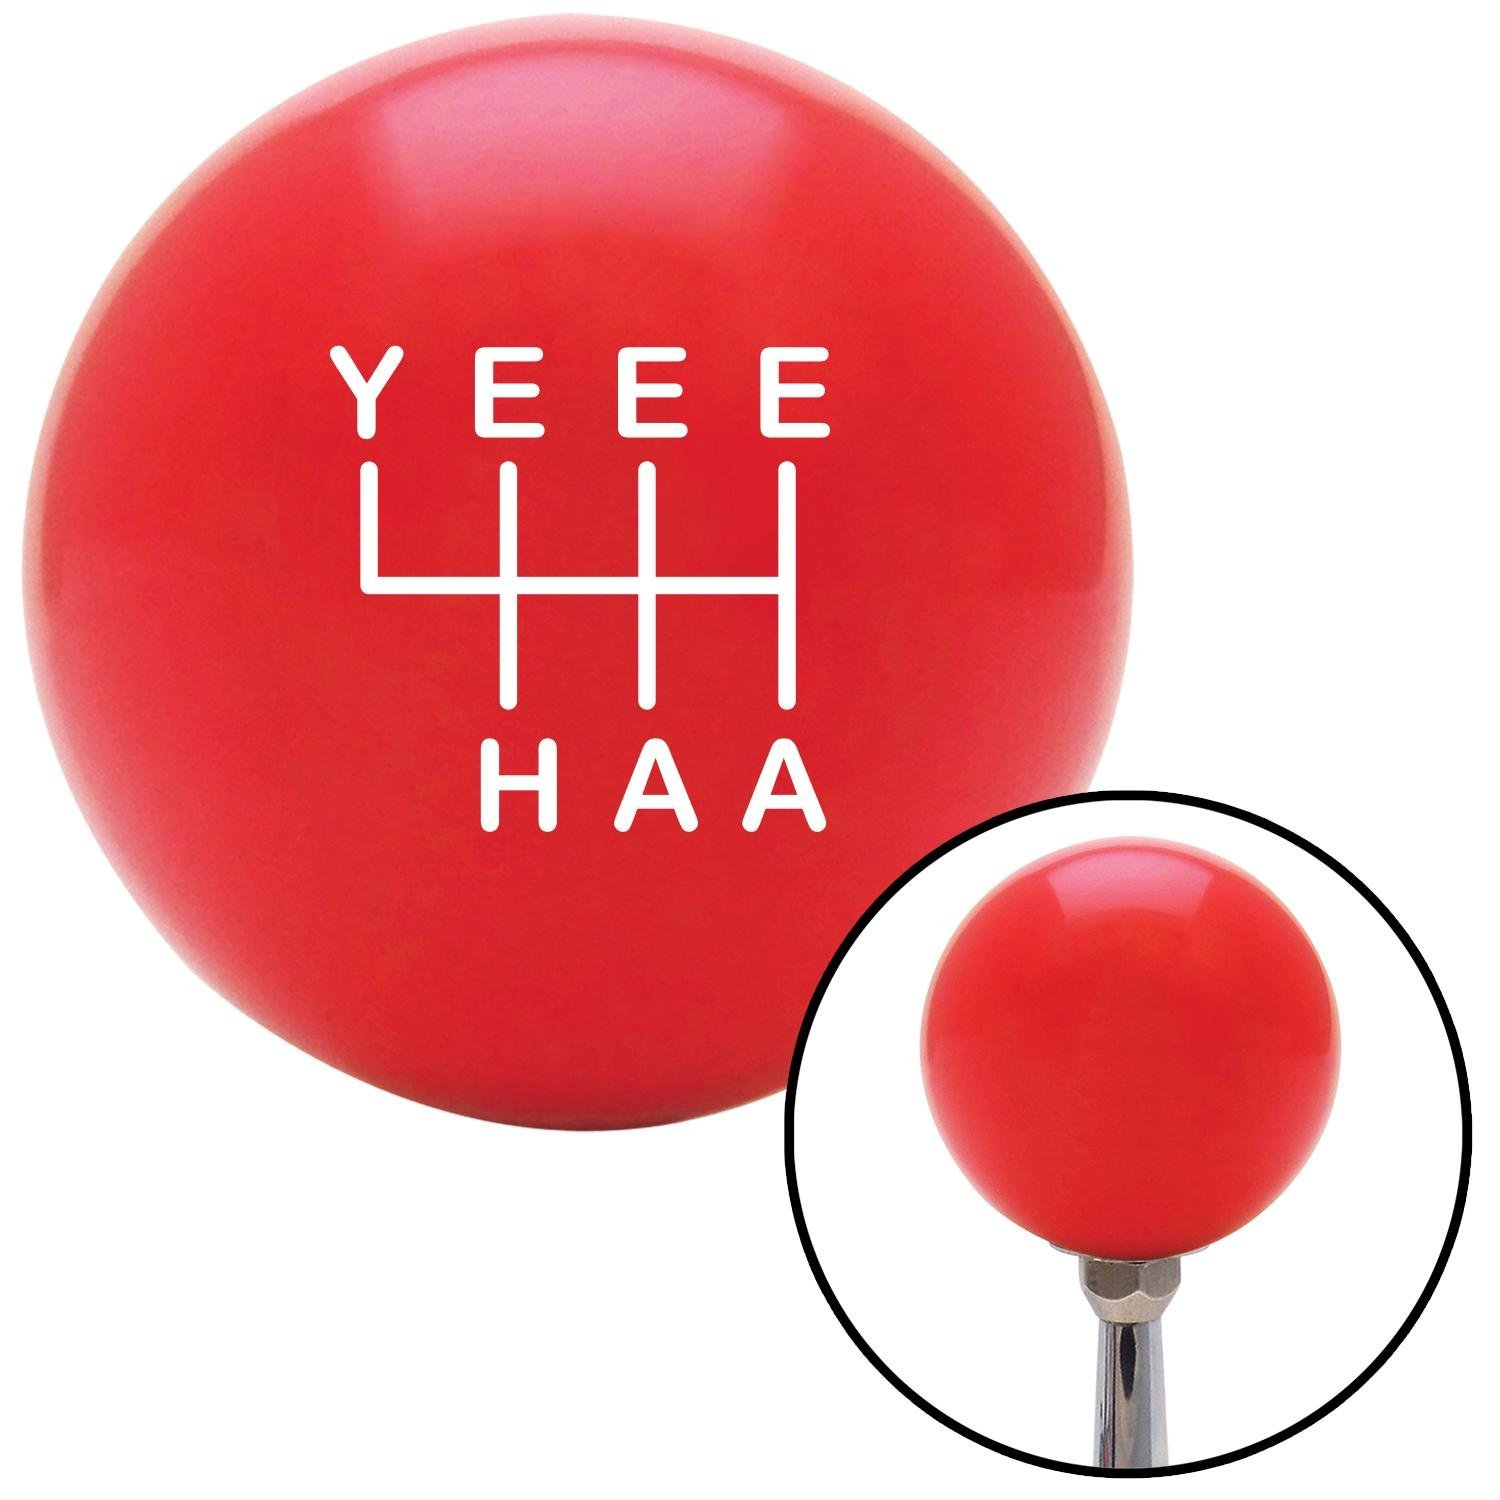 American Shifter 301711 Shift Knob White YeeeHaa 6 Speed Red with M16 x 1.5 Insert